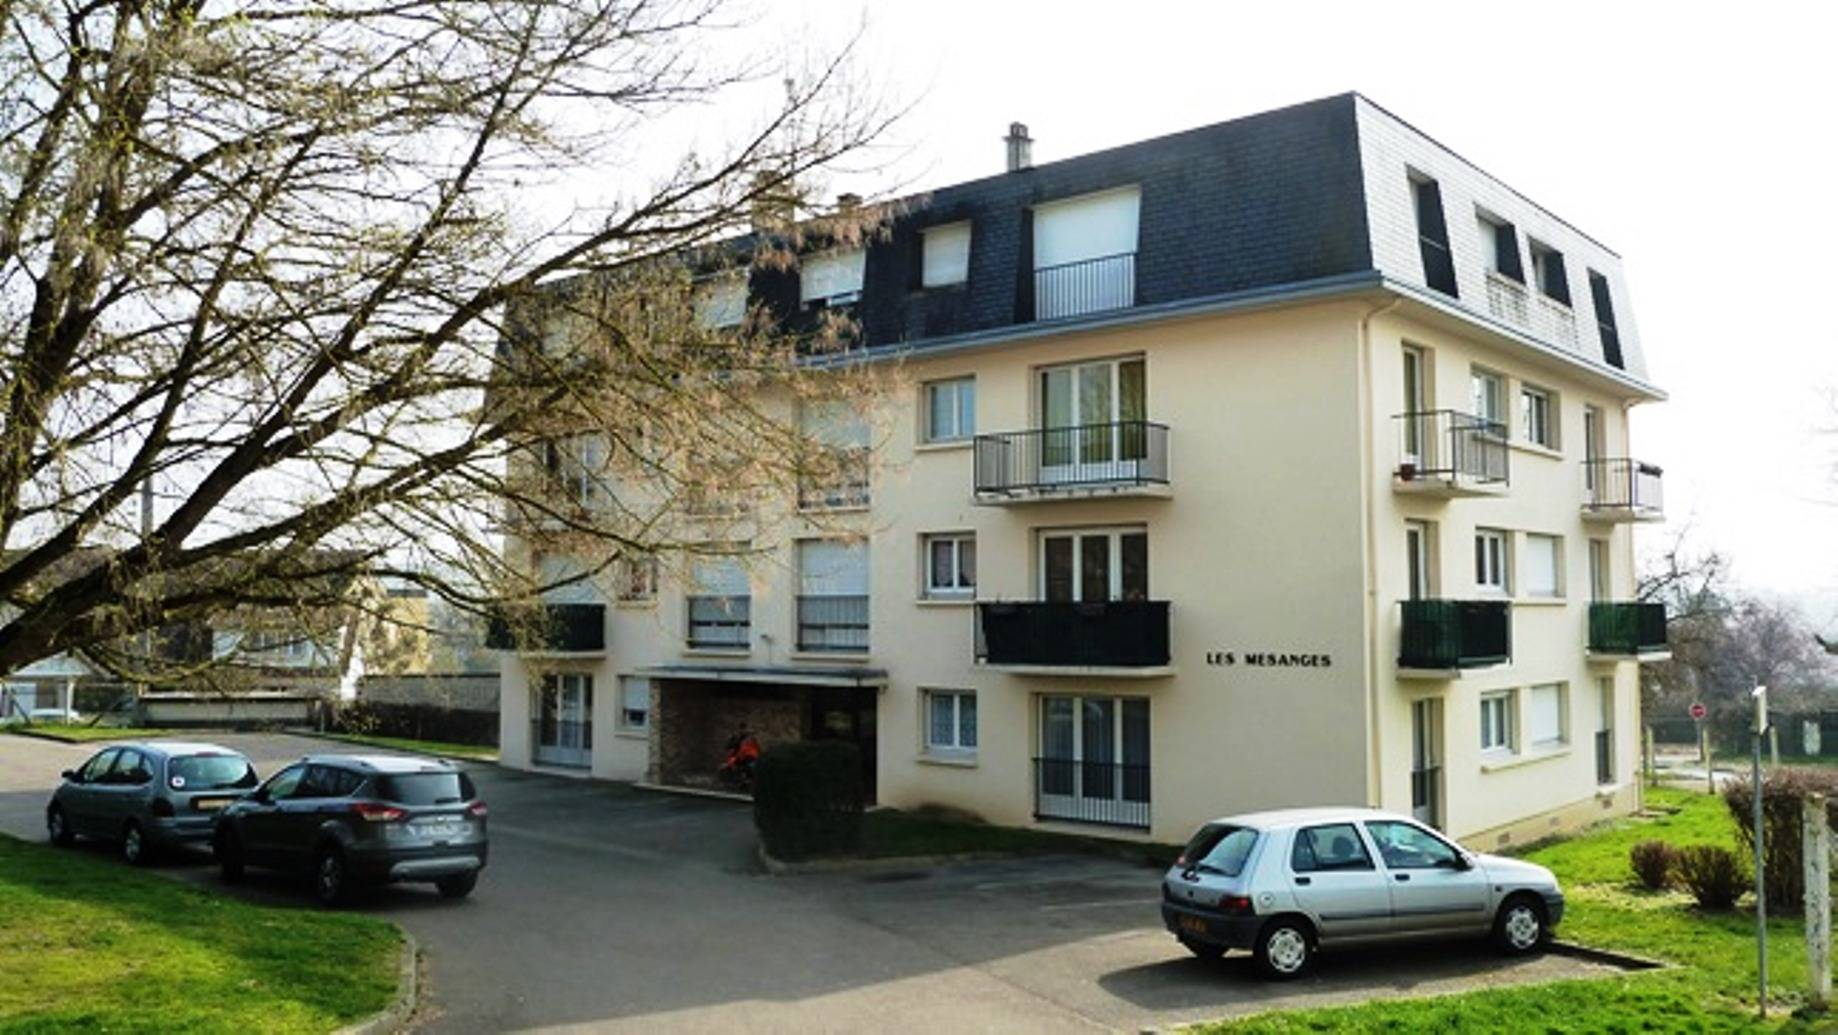 A vendre appartement de type f2 louviers 27400 for Appartement f2